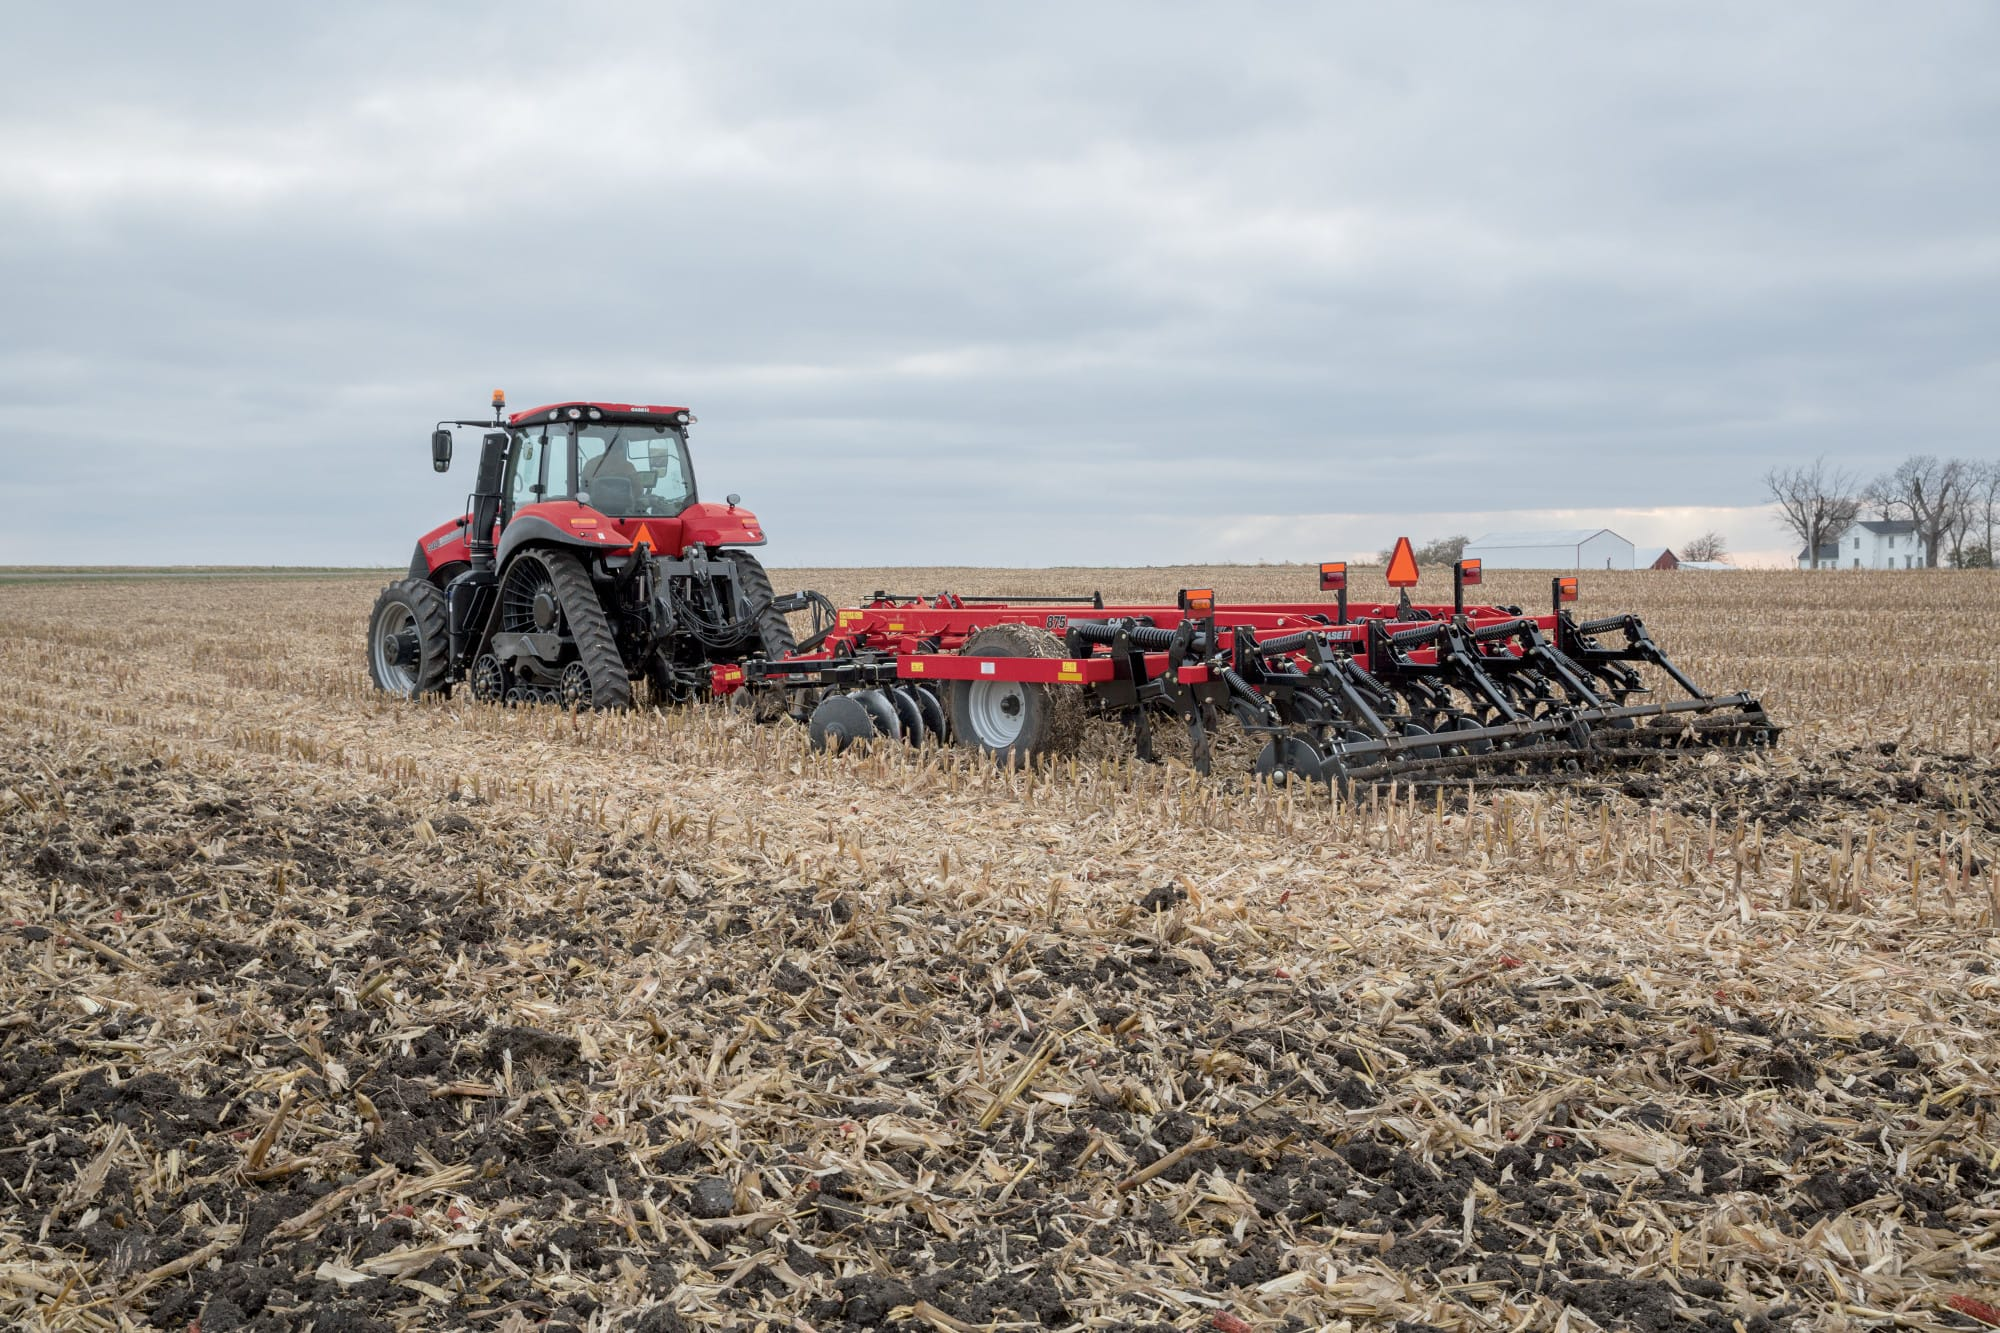 Magnum_340_Rowtrac_with_875_Ecolo Tiger_Disk_Ripper_1142_11 14?width=1280&height=562 case ih troubleshooting support information  at panicattacktreatment.co